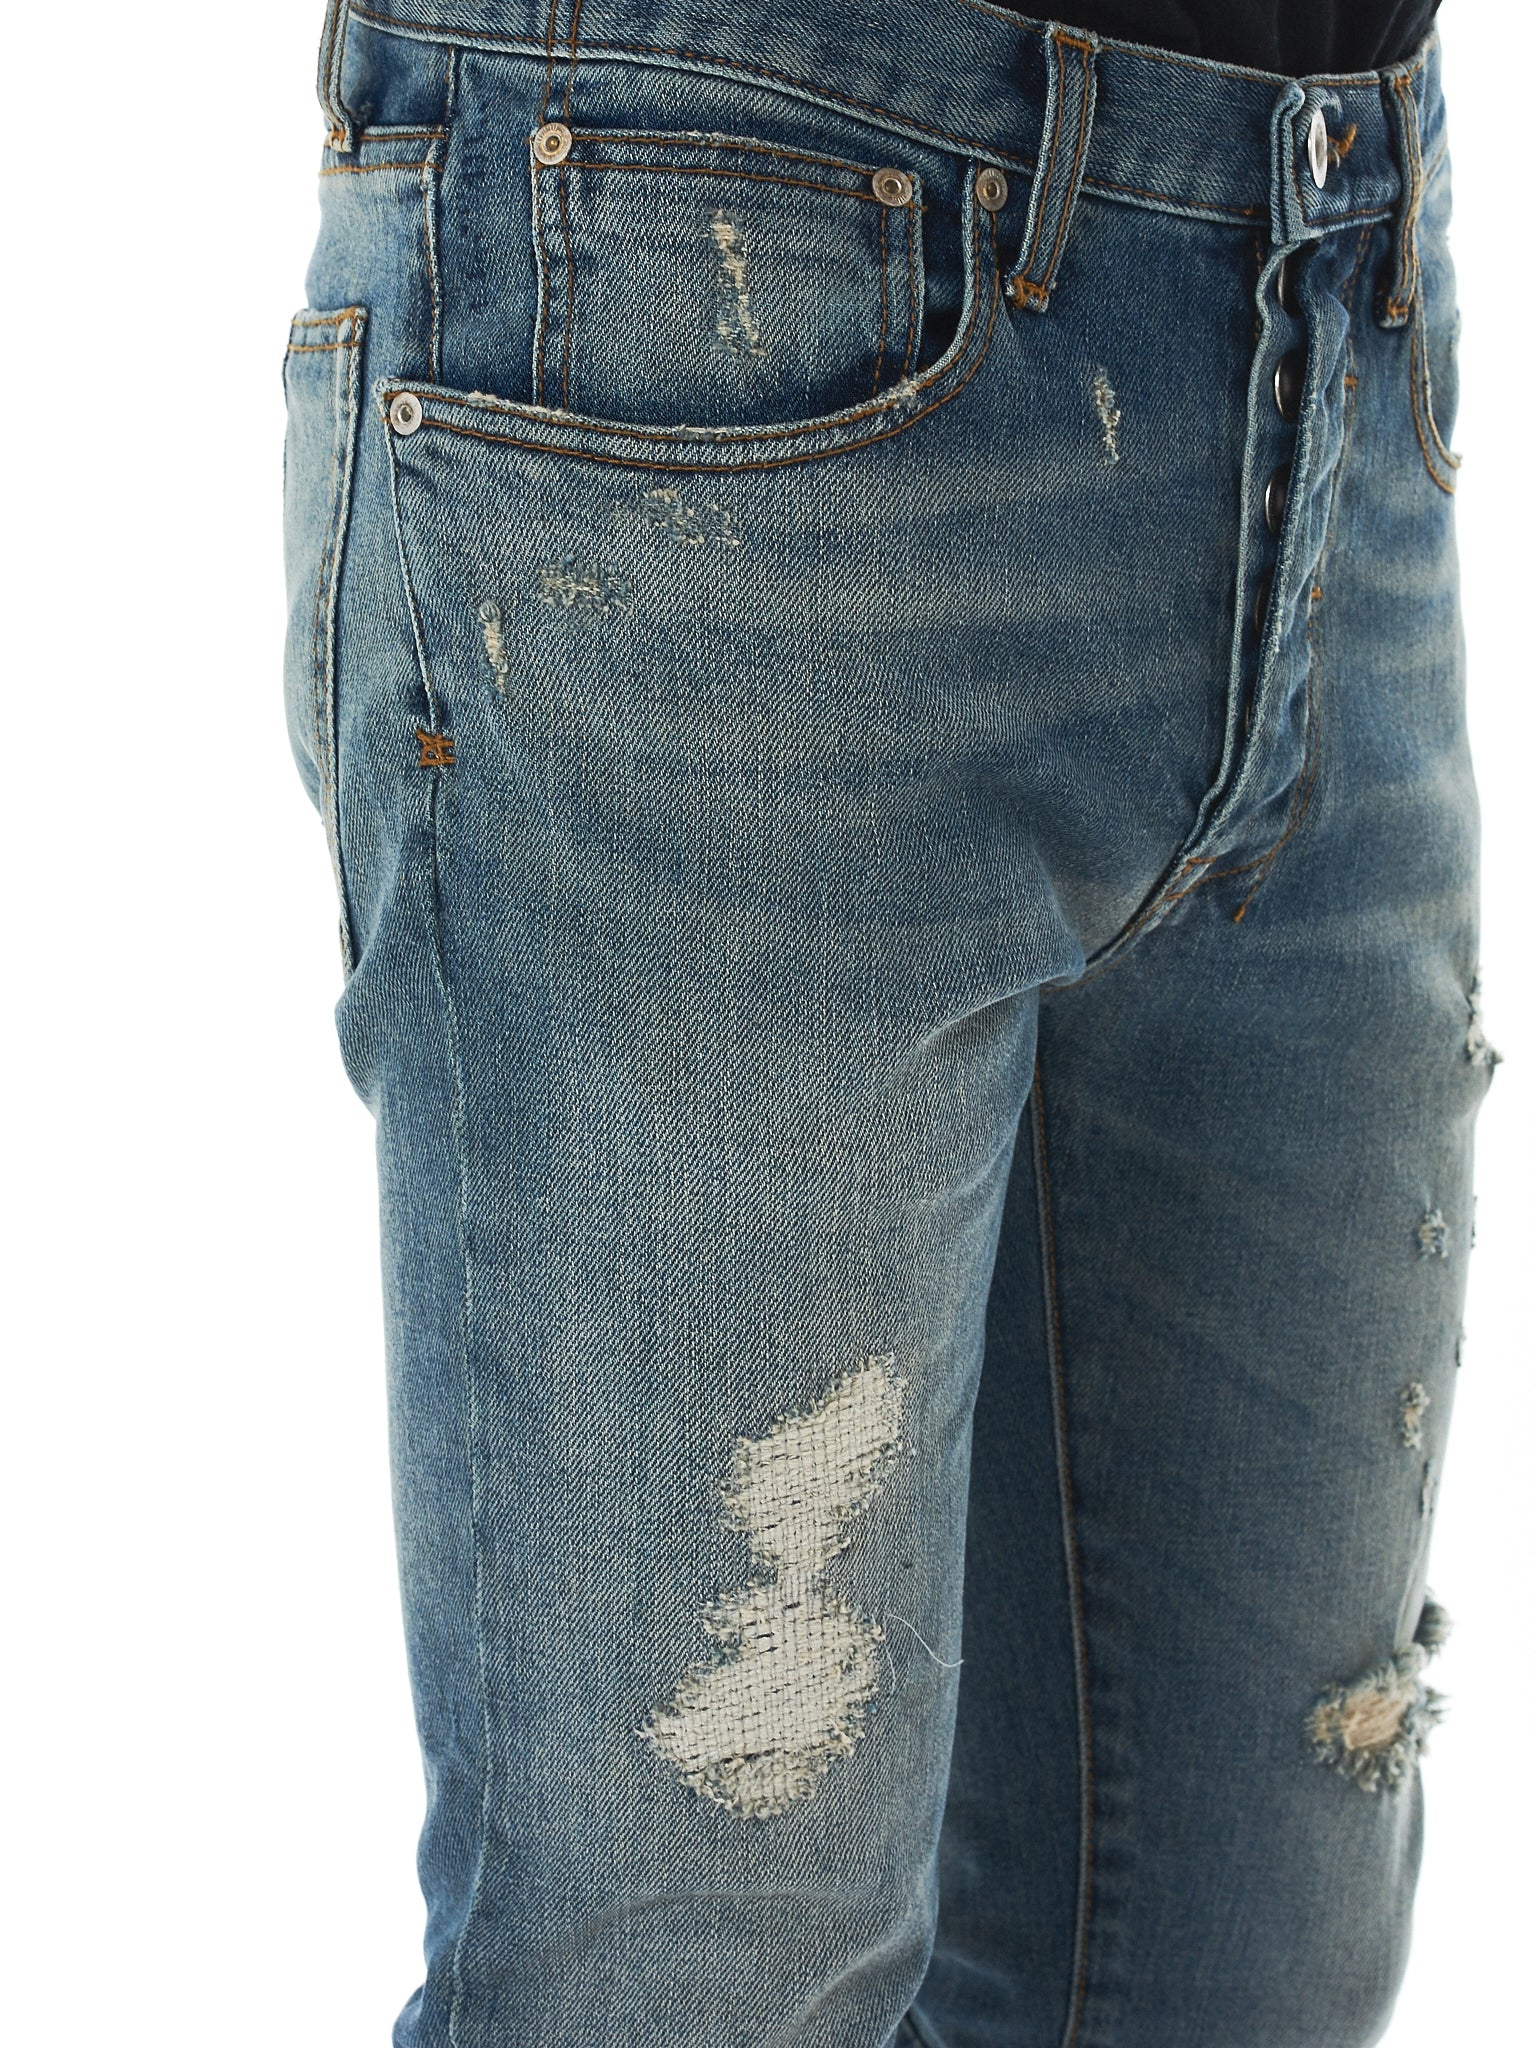 Unravel Distressed Jeans - Hlorenzo Detail 2